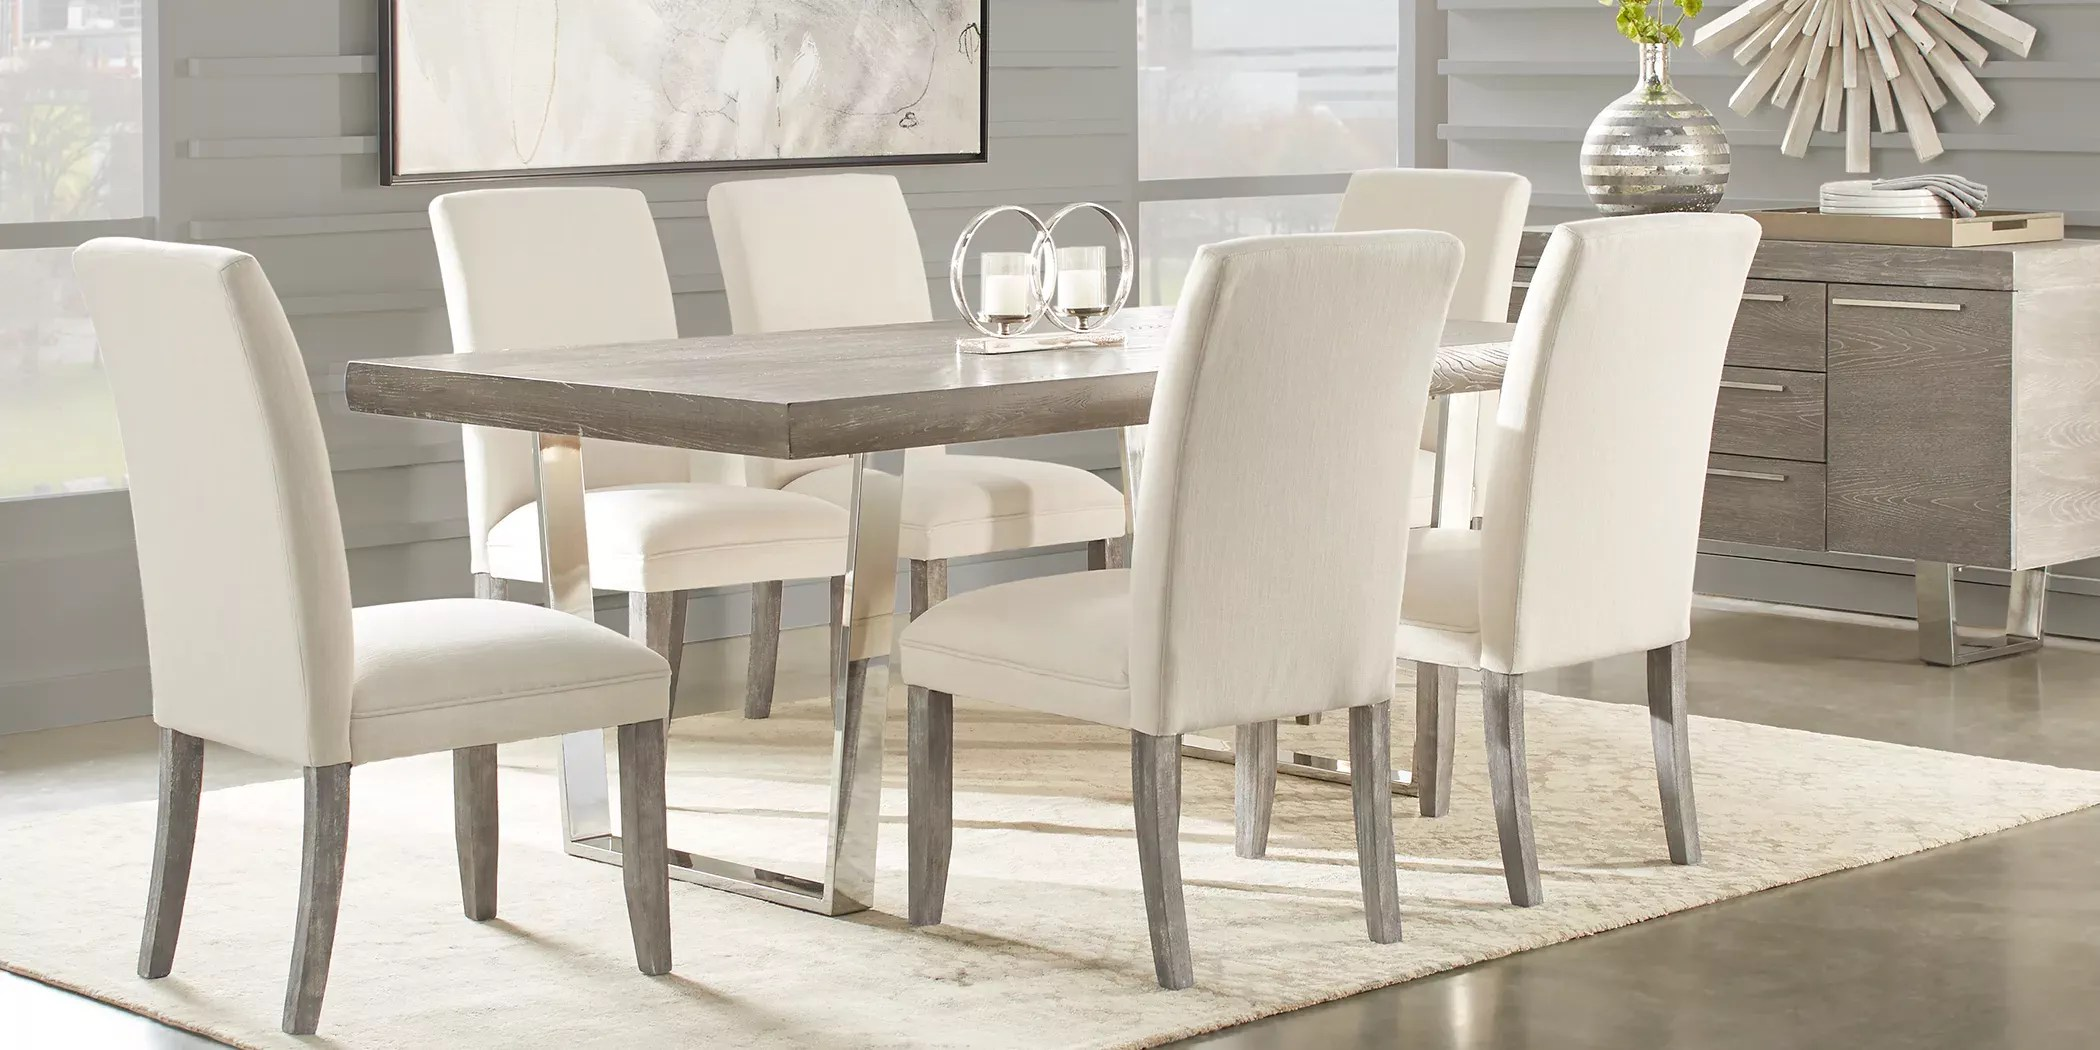 Cindy Crawford Home San Francisco Gray 5 Pc Dining Room With Chalk Chairs Rooms To Go